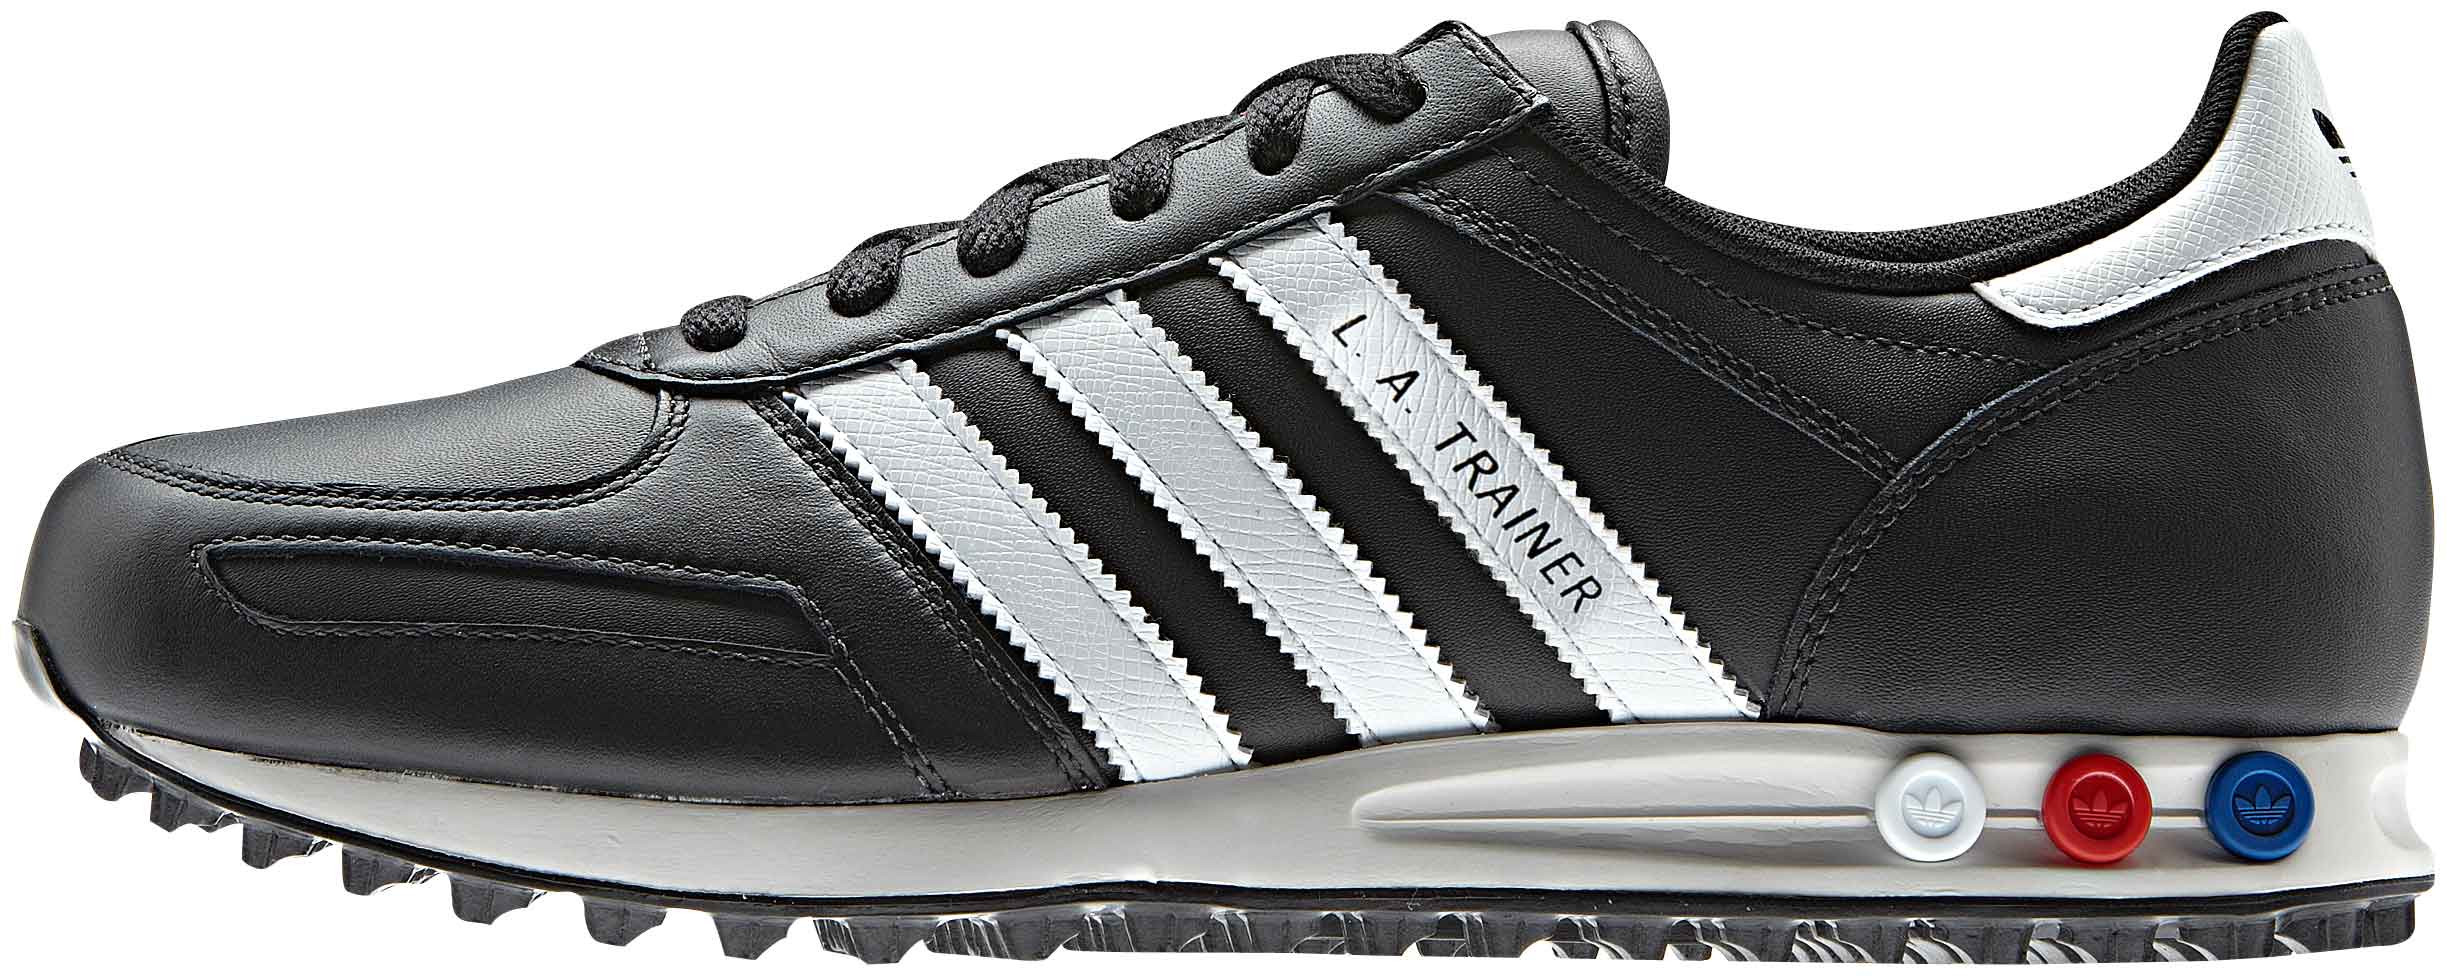 Adidas originals – Adidas la trainer herre fra billigsport24